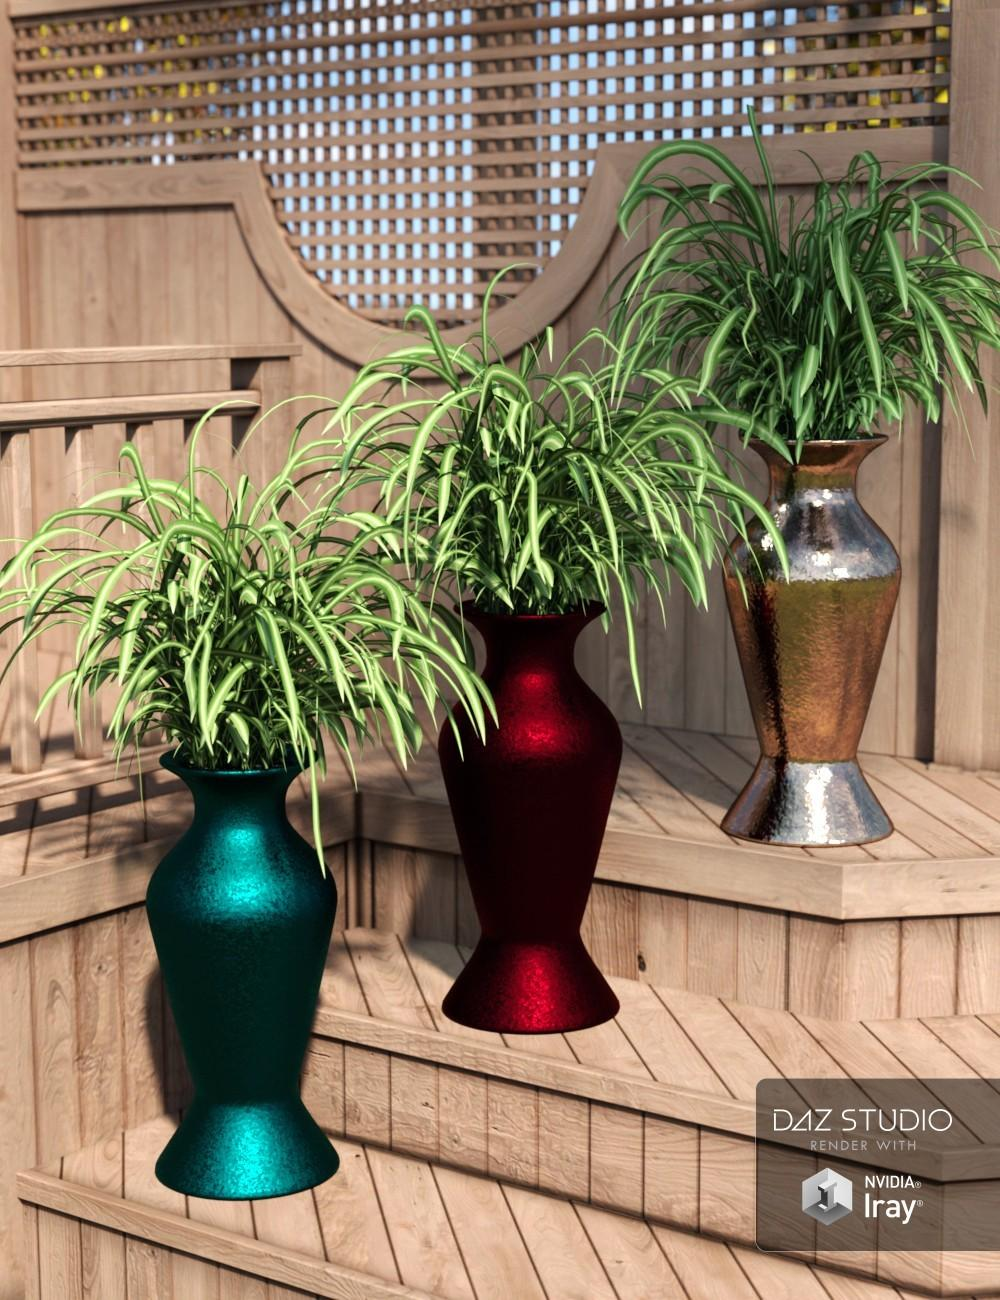 Daz Studio Decor Basics